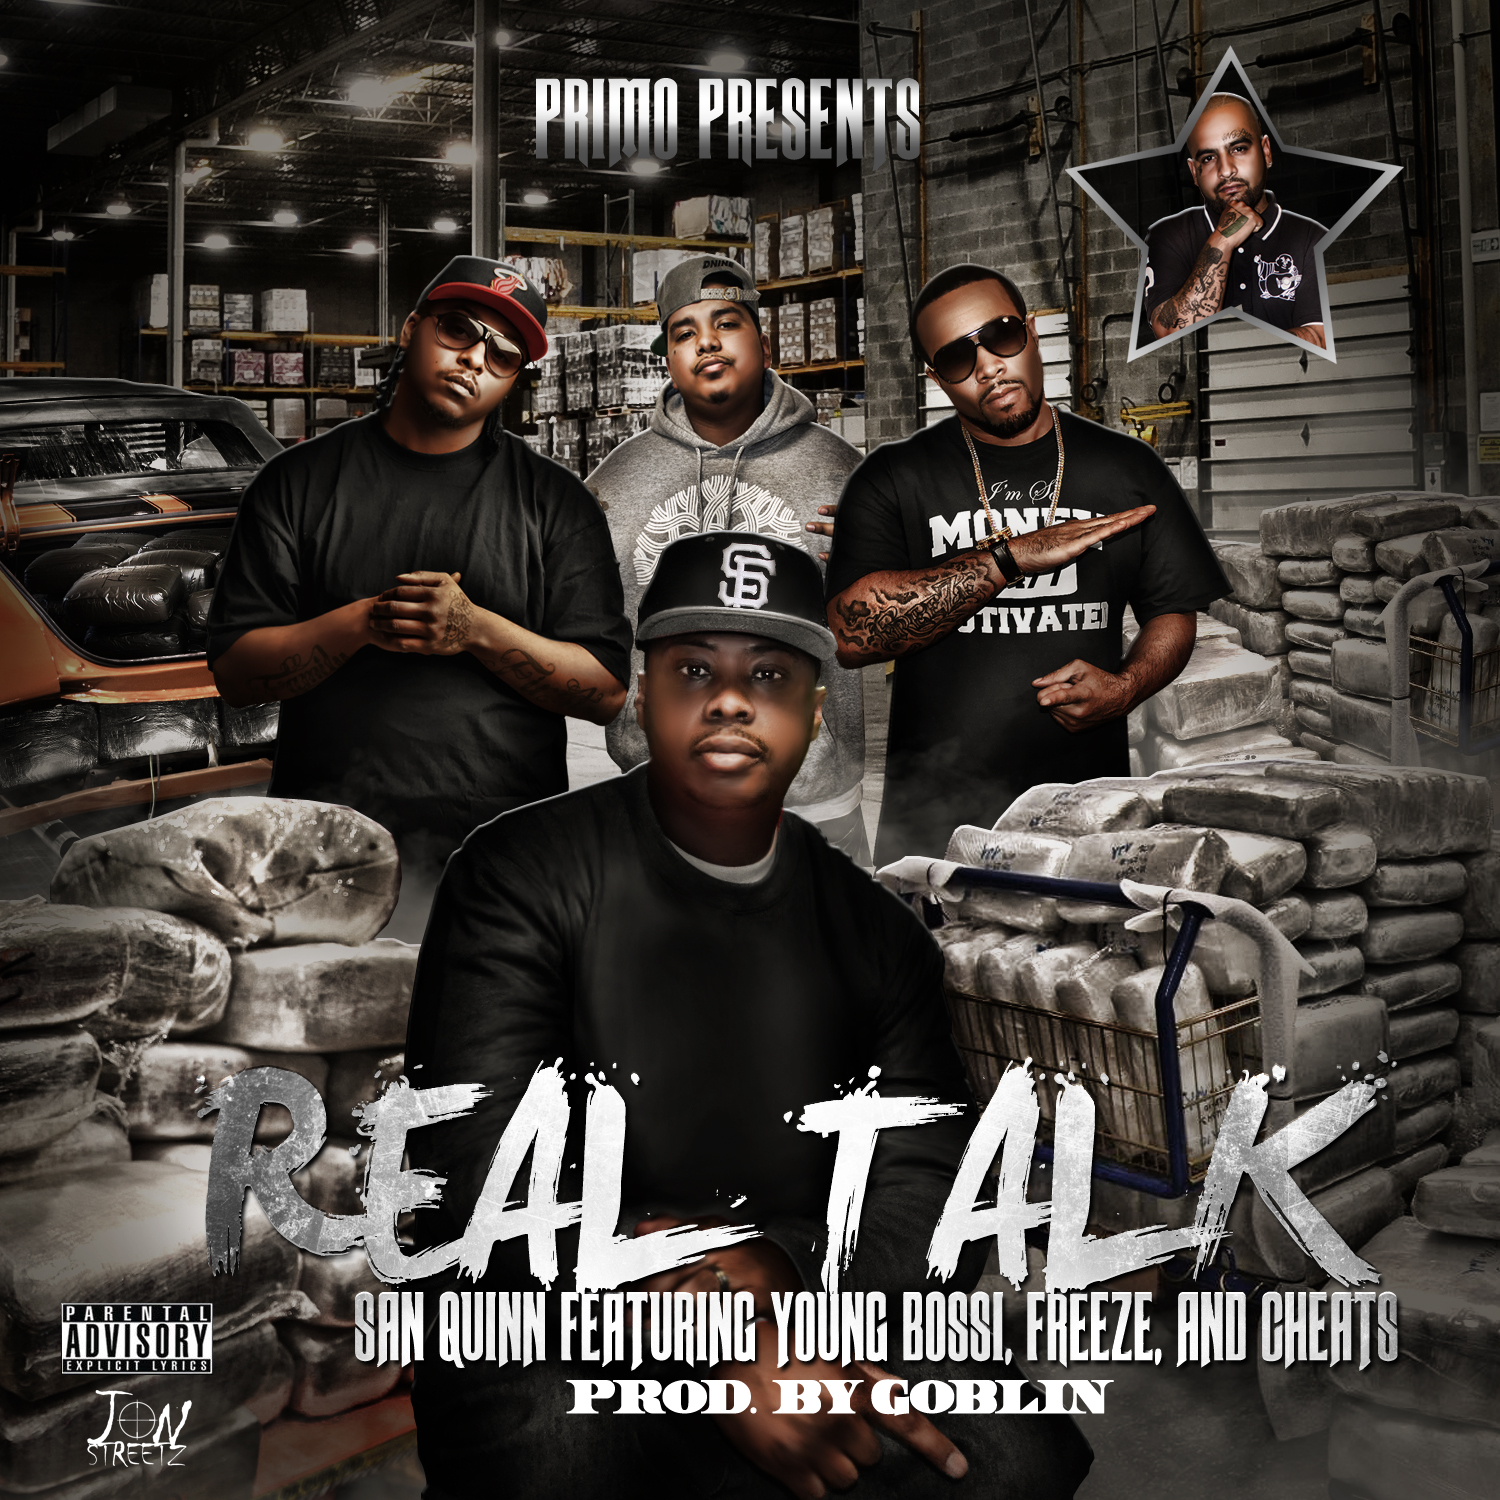 San Quinn ft. Young Bossi, Freeze & Cheats - Real Talk (Produced by Goblin) [THIZZLER.COM]